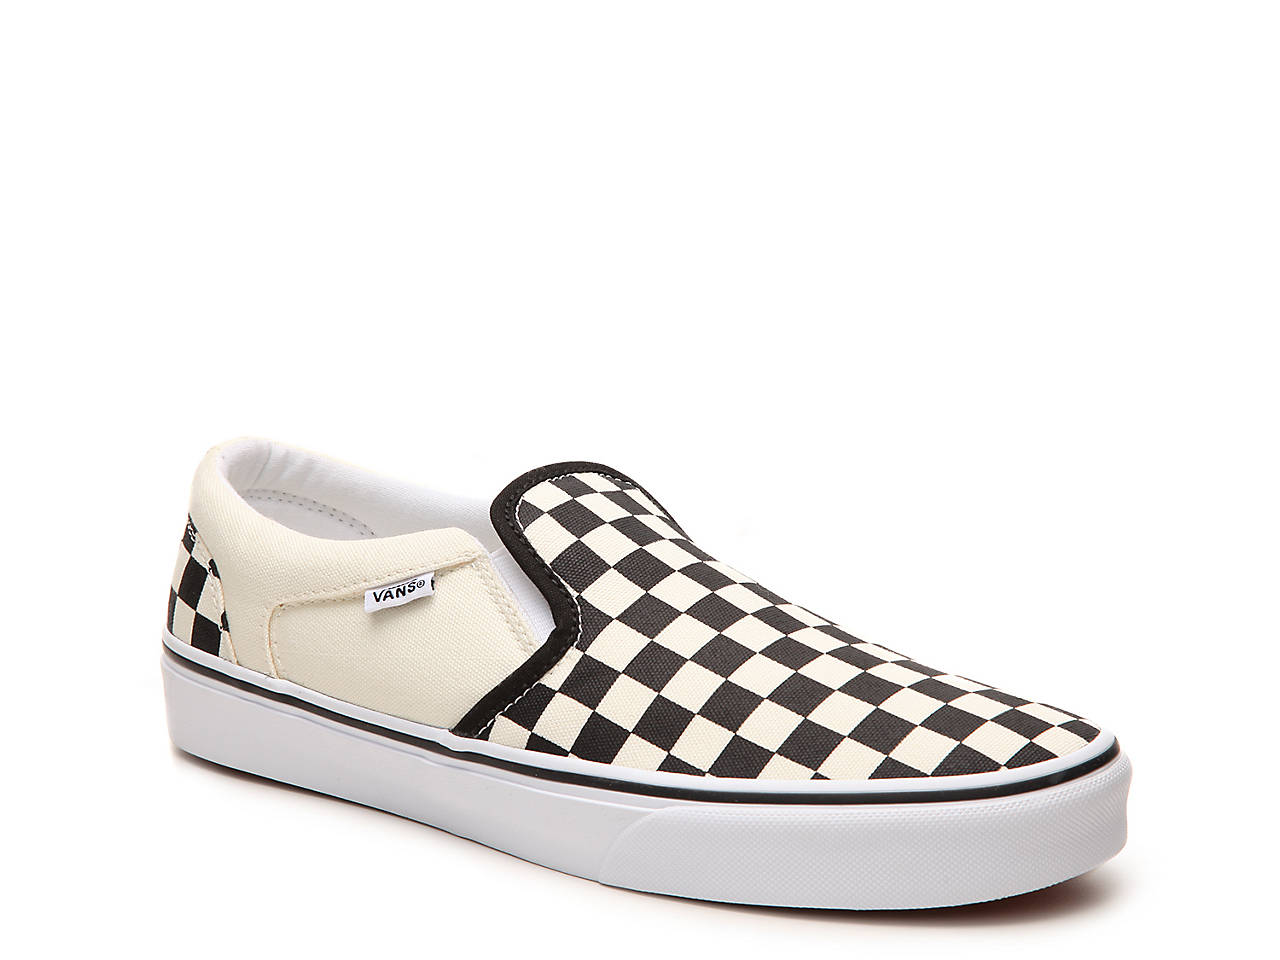 09500f472b8b Vans Asher Checkered Slip-On Sneaker - Men s Men s Shoes